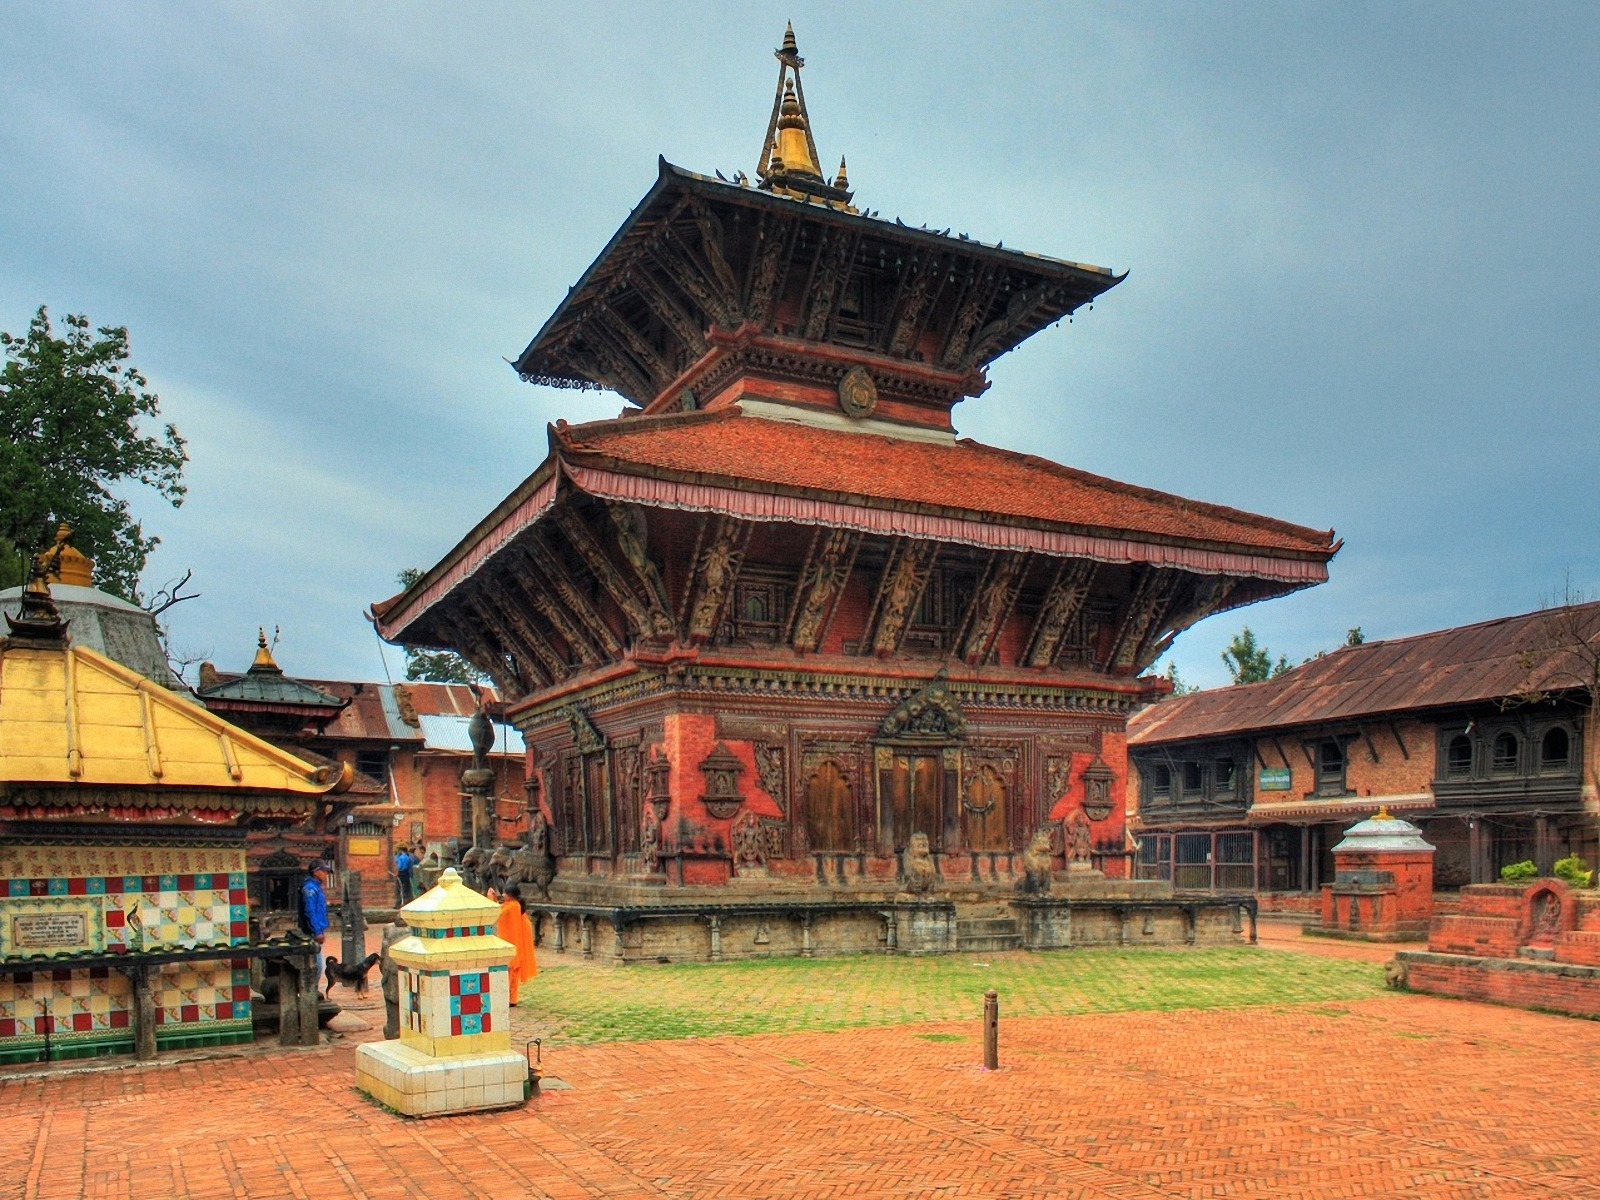 Nepal wallpaper Wallpaper Wide HD 1600x1200